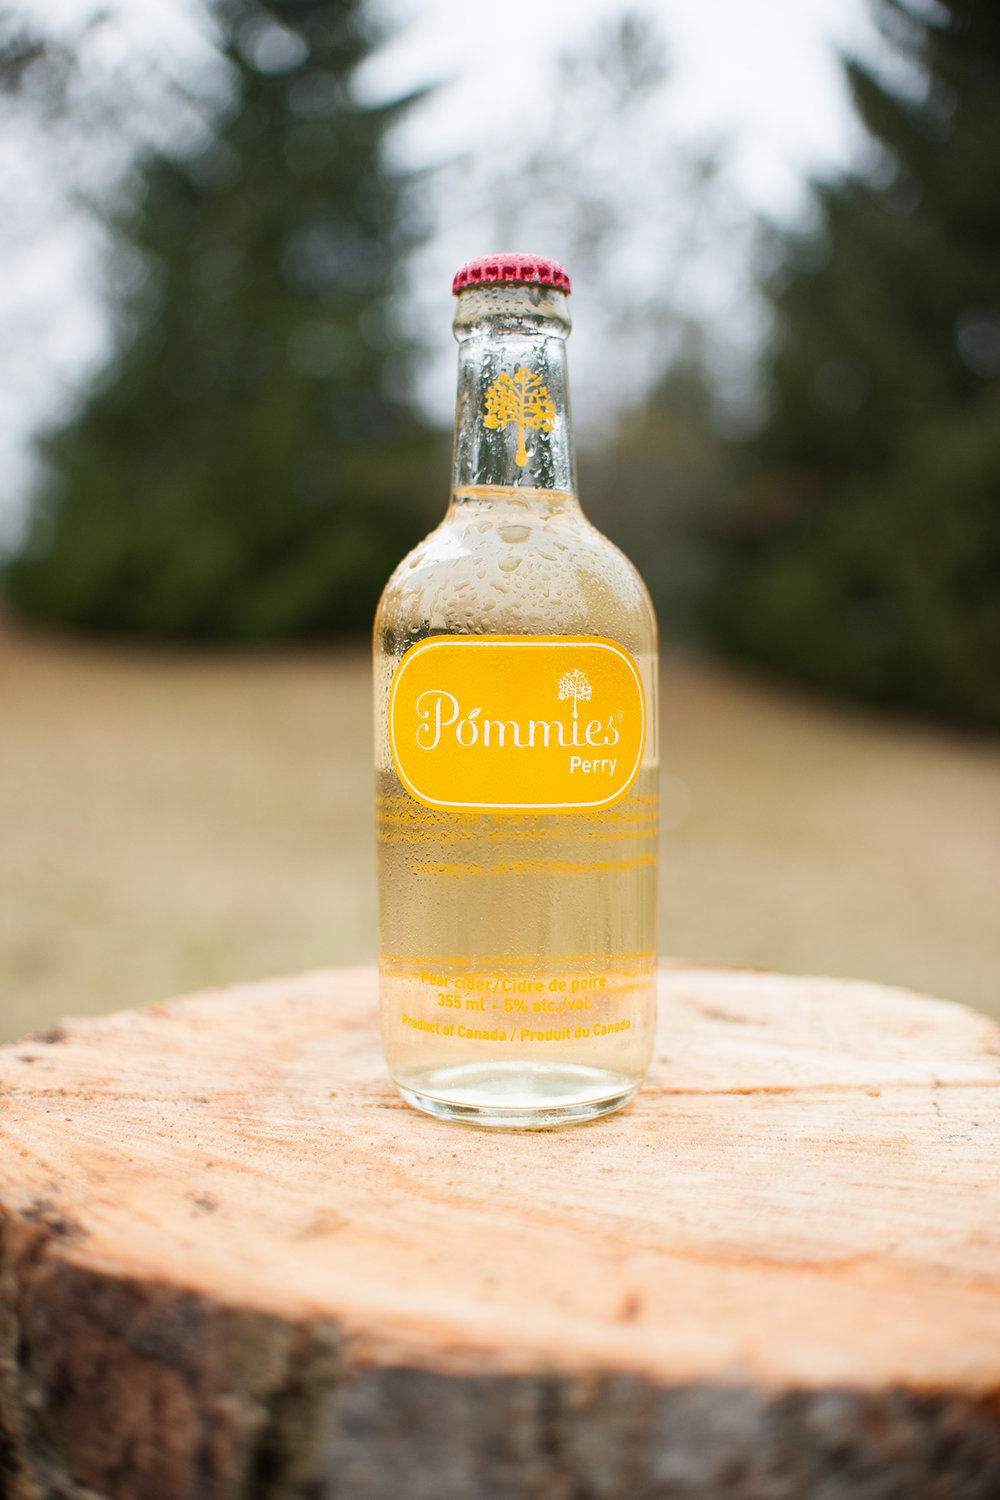 Poster design for Pommies Dry Cider based in Caledon, Ontario. Bottle within a tree and grunge texture within a simple flat design.